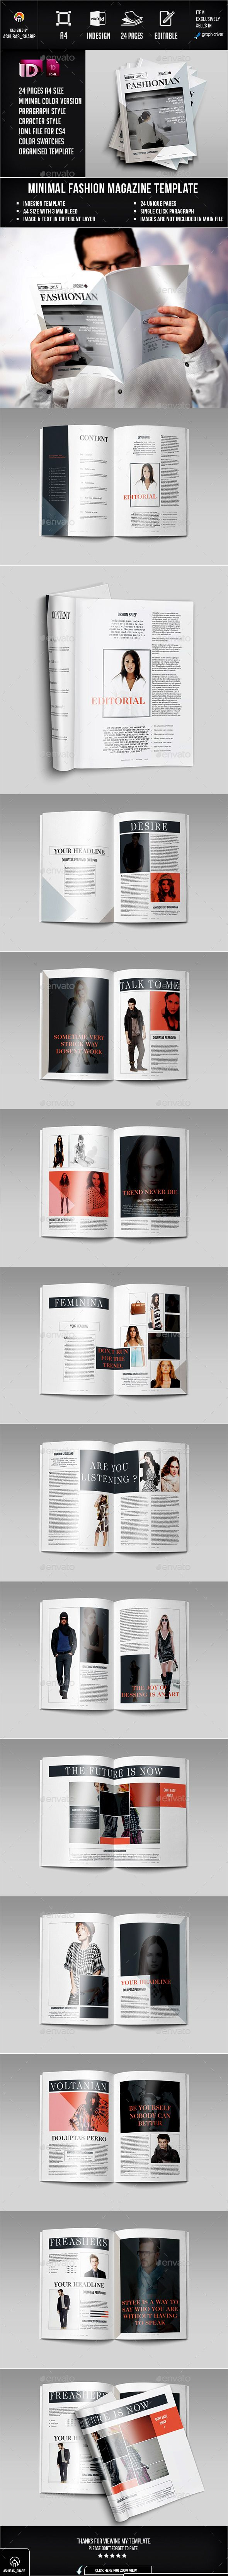 Fashion Magazine 24 Page Layout Template Indesign Indd Design